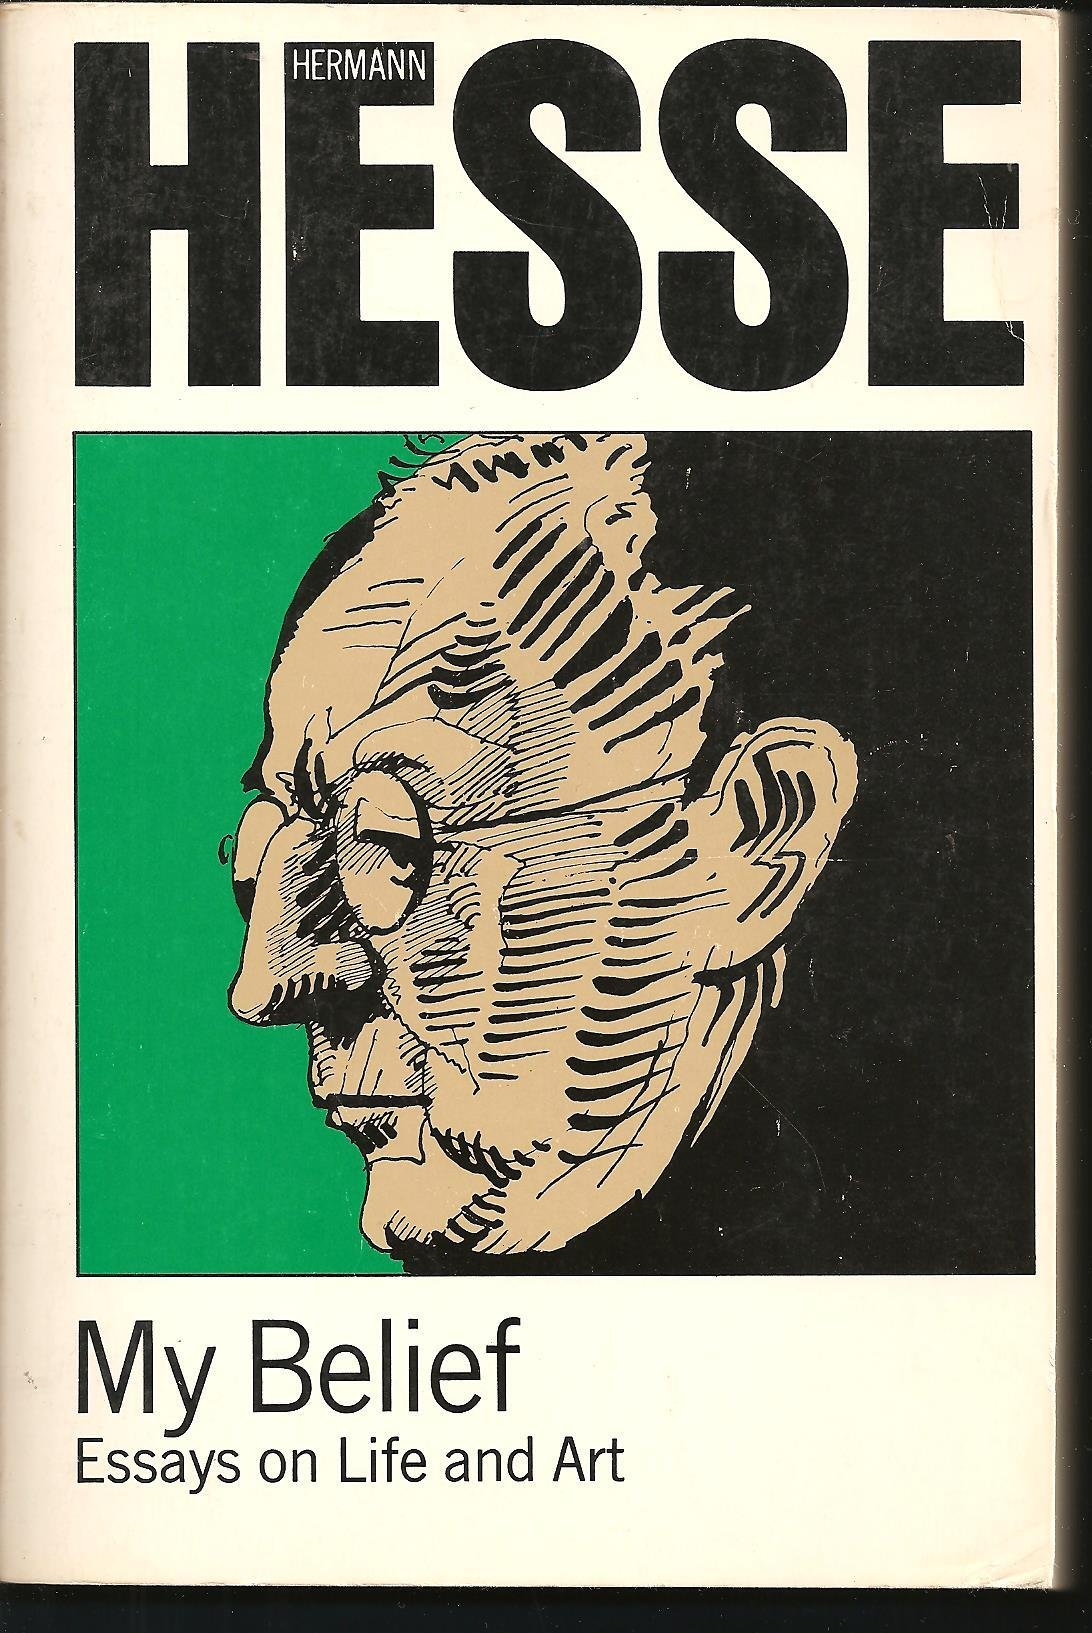 essay on belief my belief essays on life and art hermann hesse  my belief essays on life and art hermann hesse my belief essays on life and art